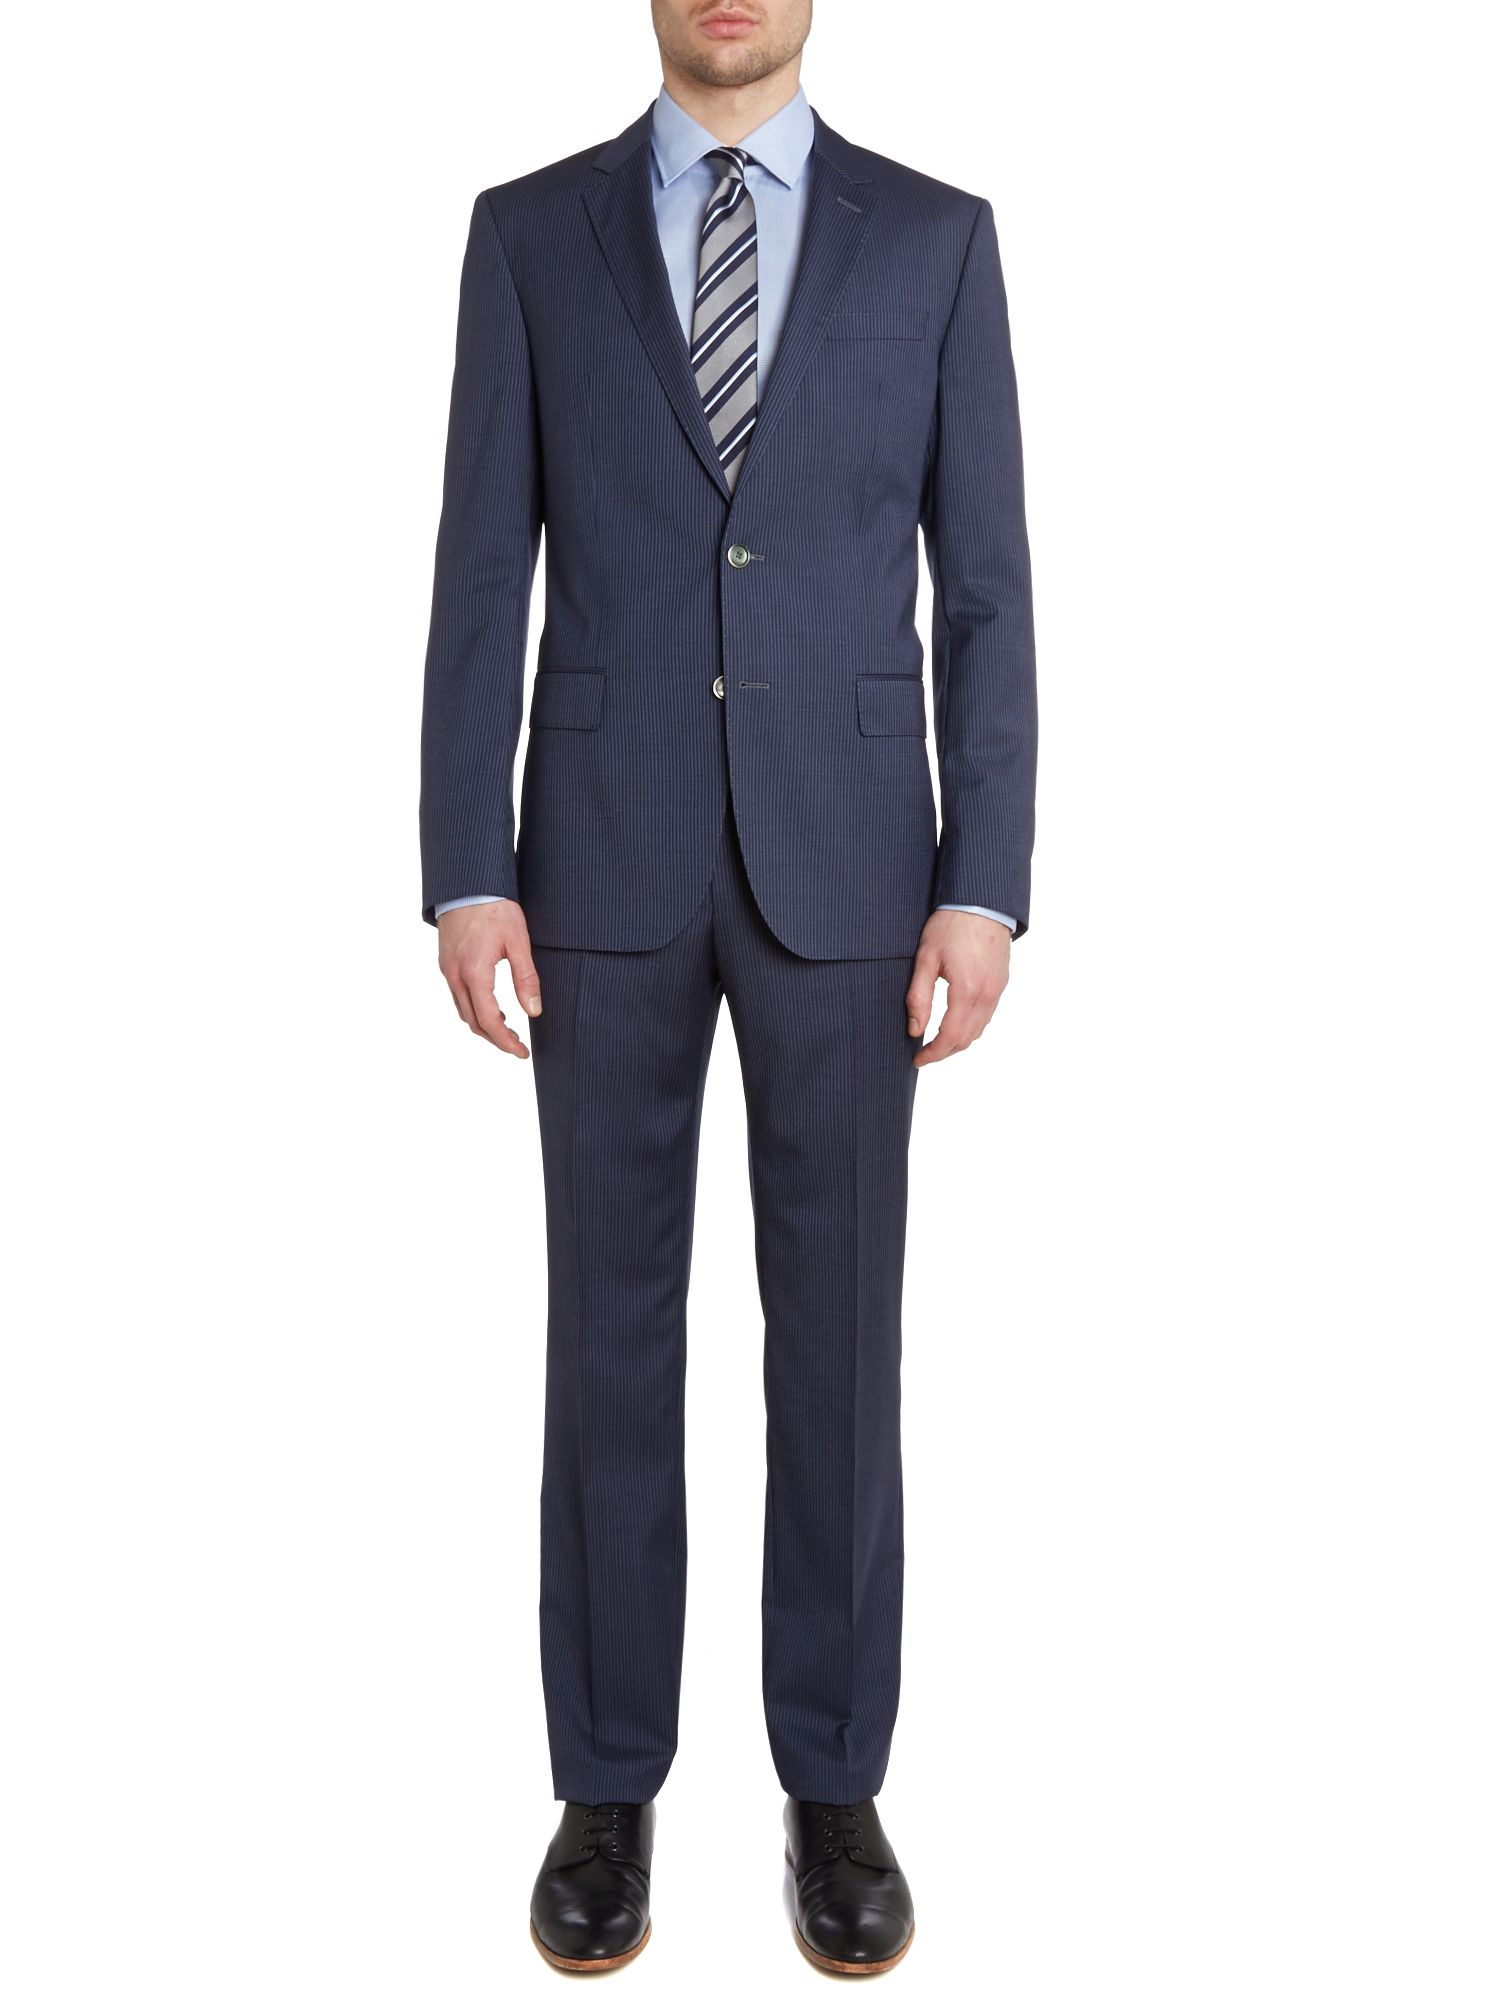 Hutson/Gander slim fit fine stripe suit